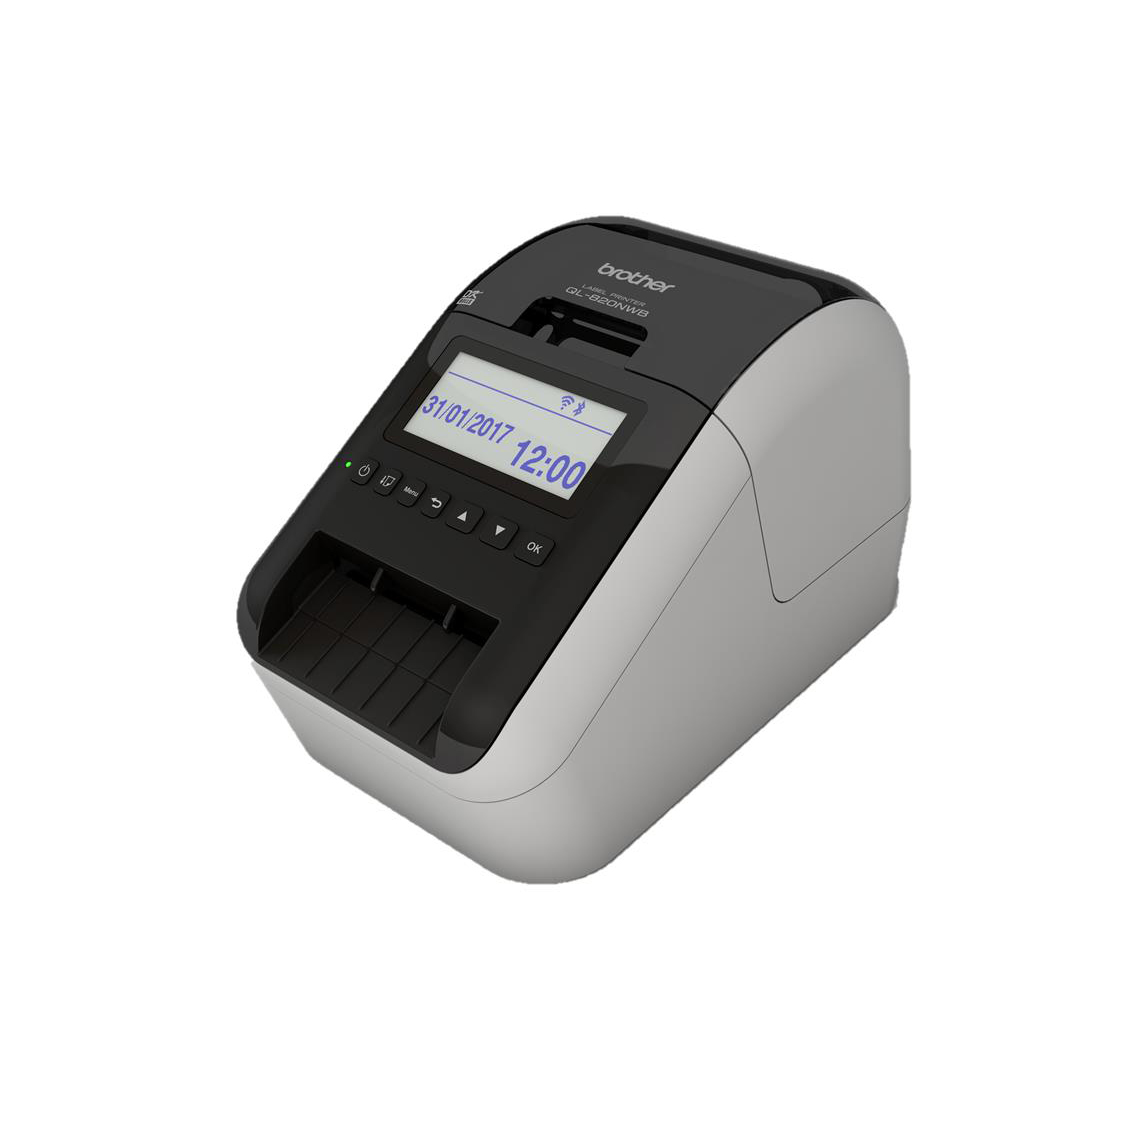 Brother Professional Label Printer Network Enabled Wireless 62mm Labels 176mm per Second Ref QL820NW